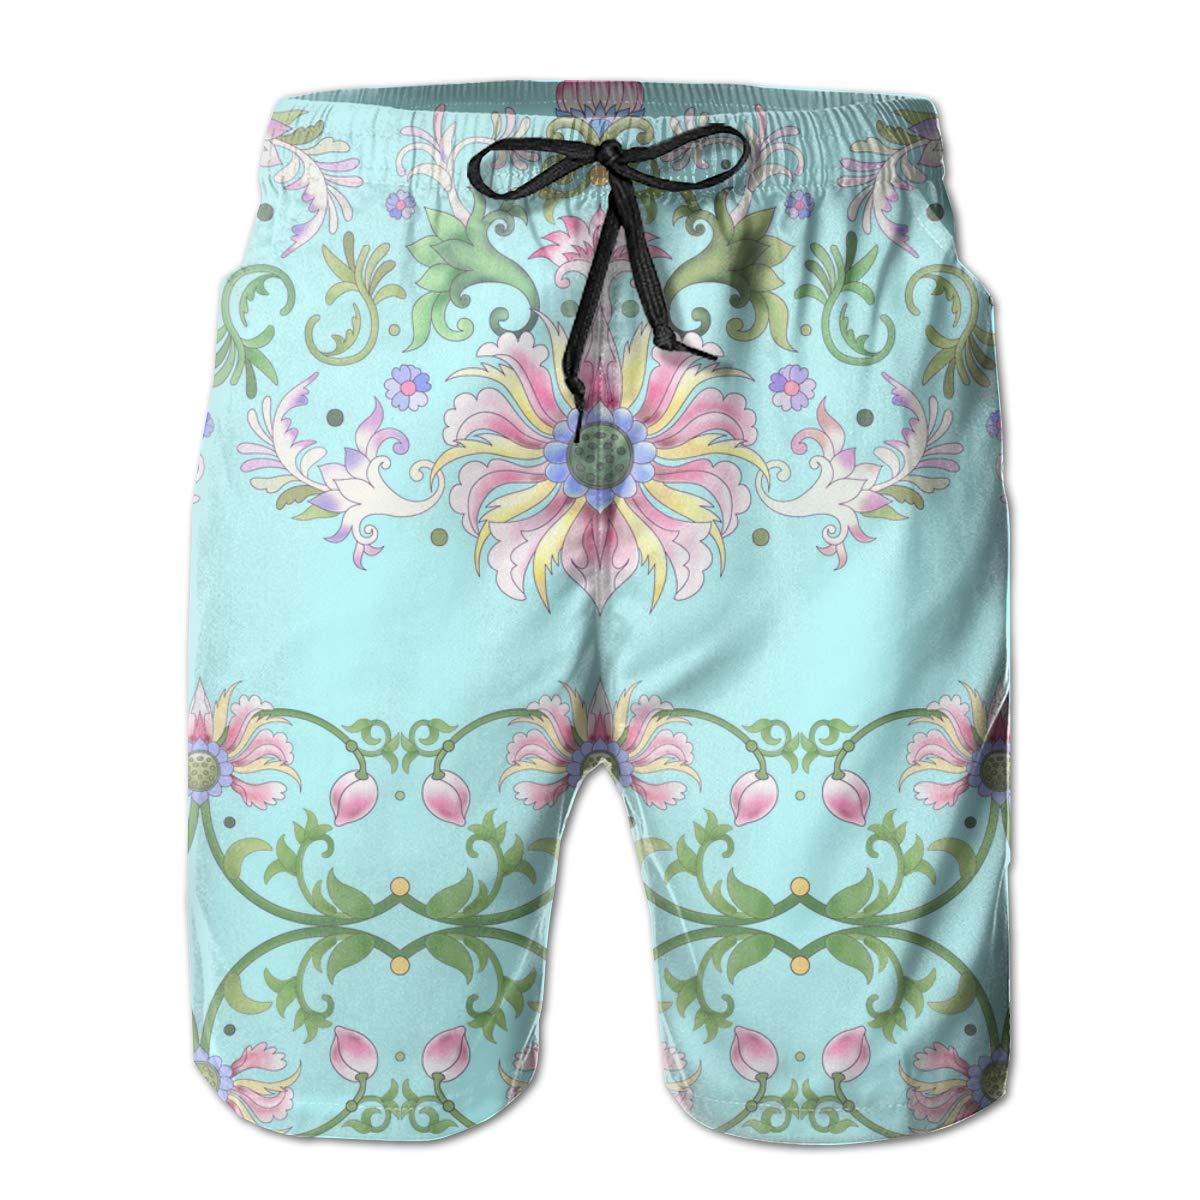 Lotus Flowers and Leaves Mens Swim Trunks Summer 3D Print Graphic Casual Athletic Swimming Short